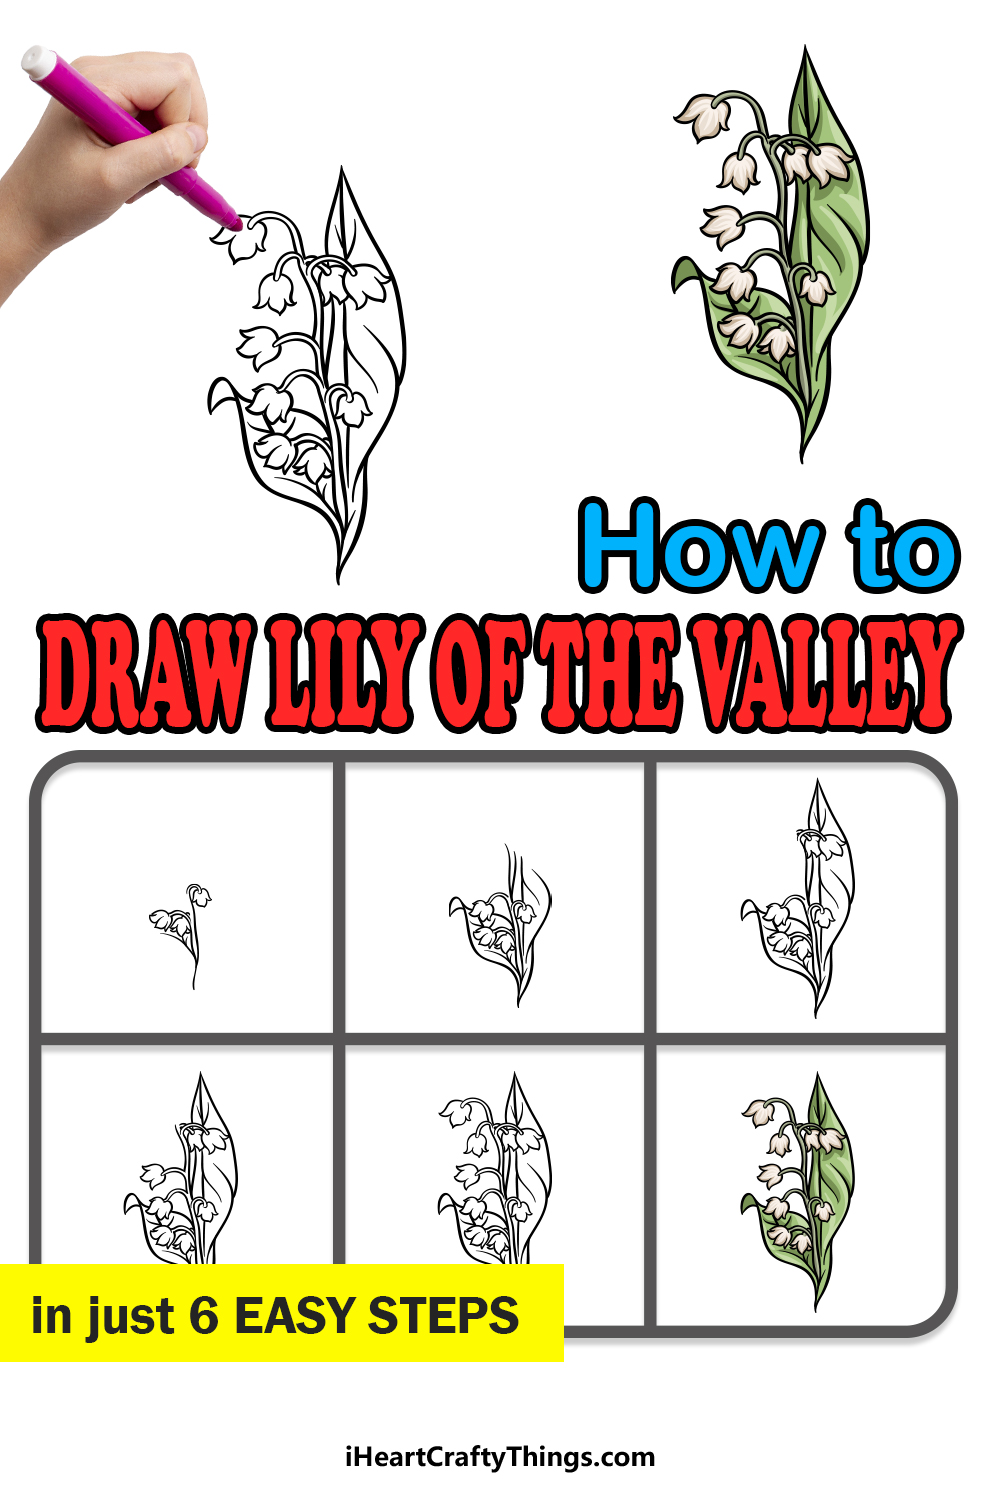 how to draw lily of the valley in 6 easy steps